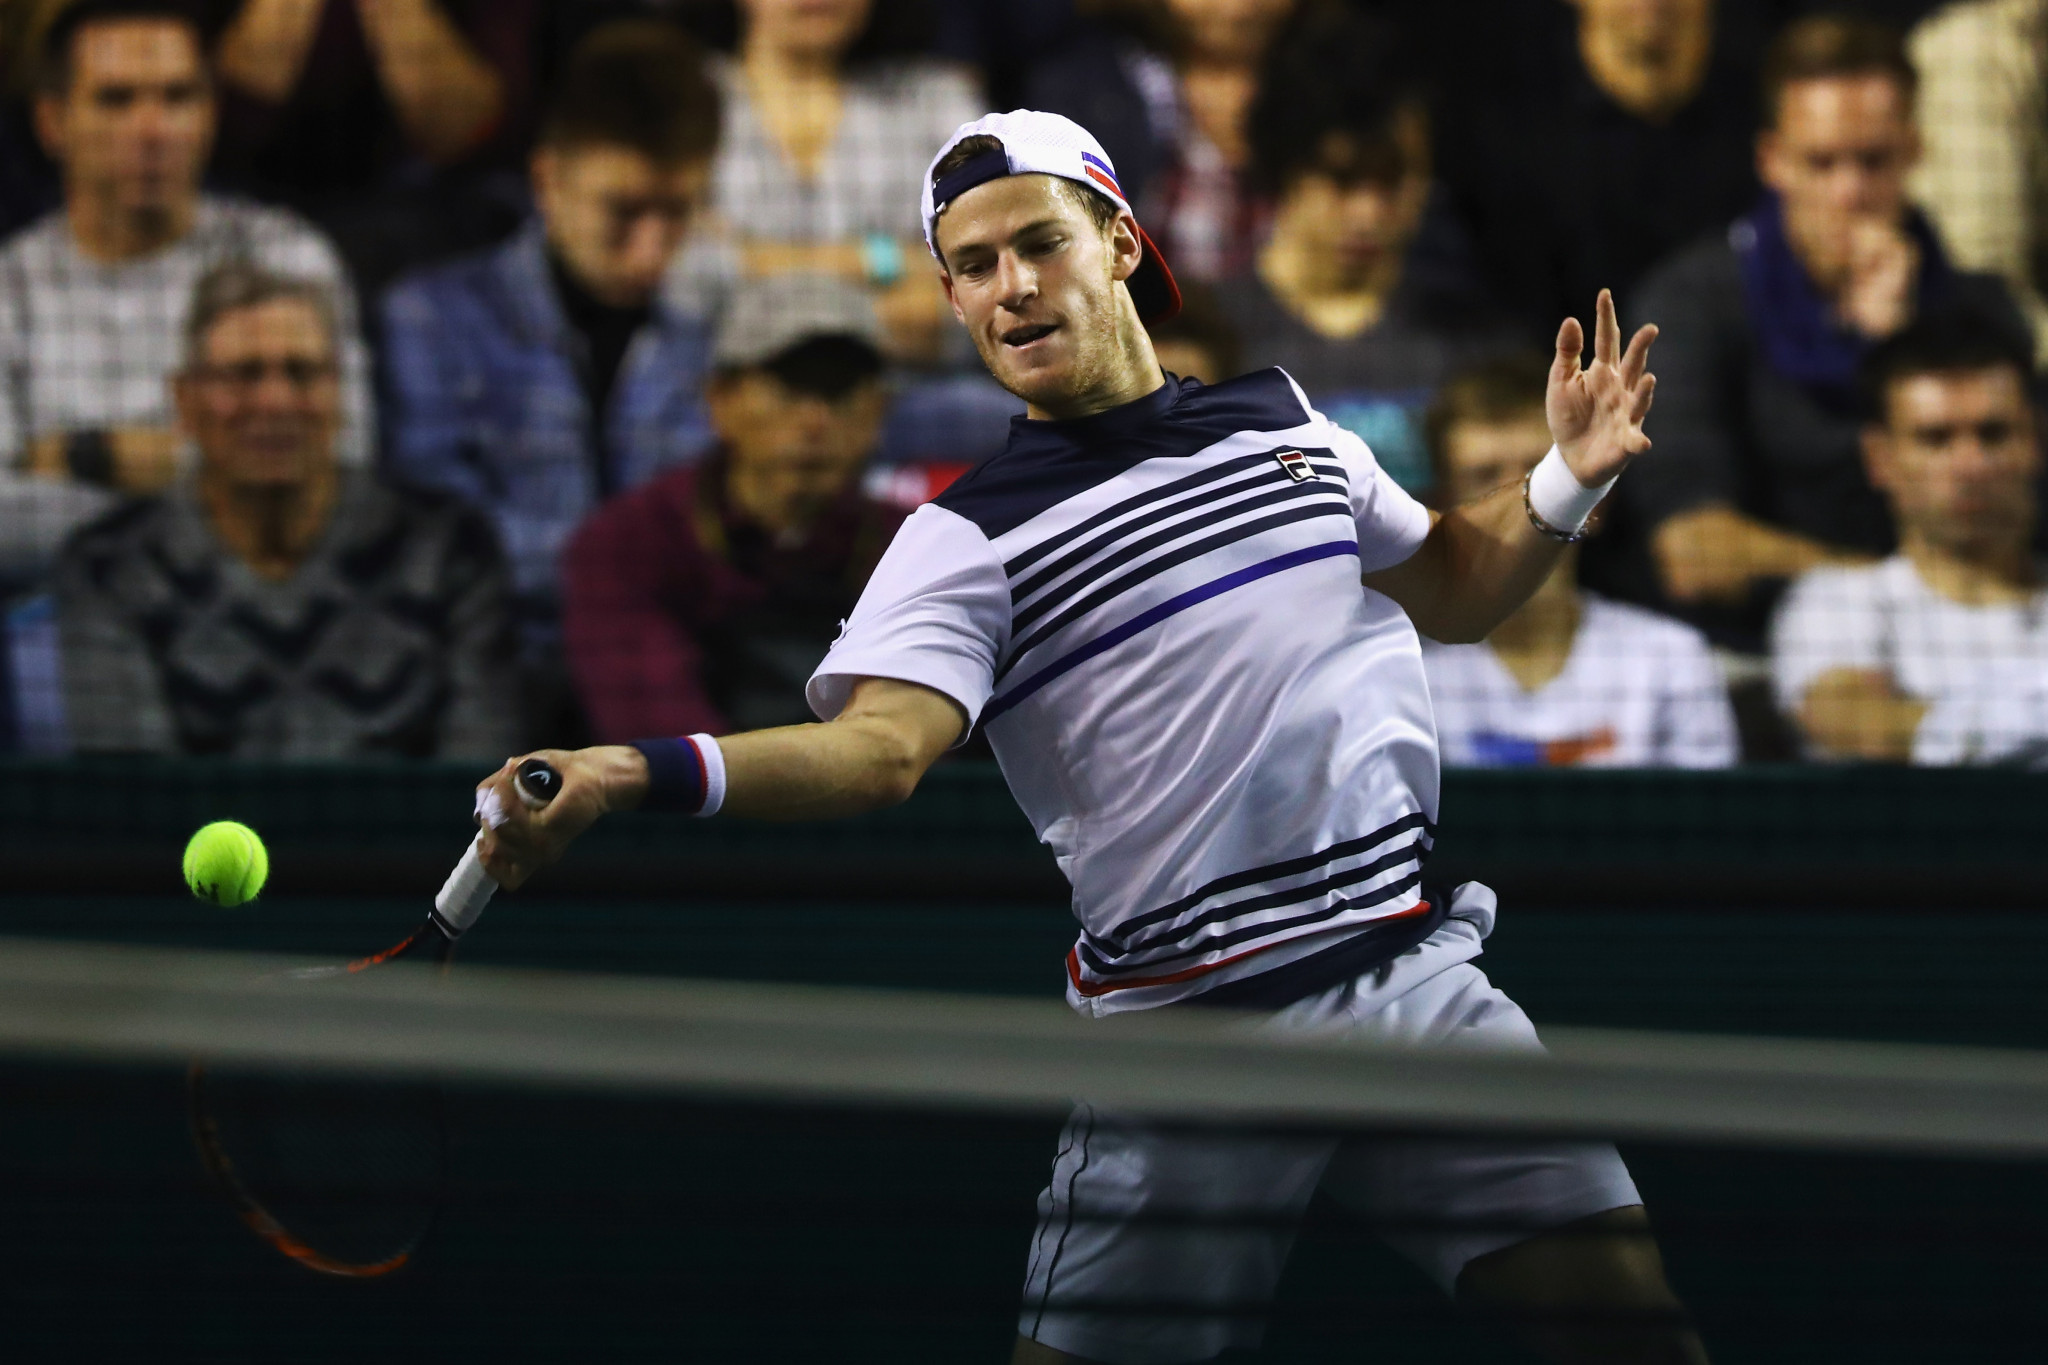 Argentina's Diego Schwartzman won his match at the Paris Masters today ©Getty Images